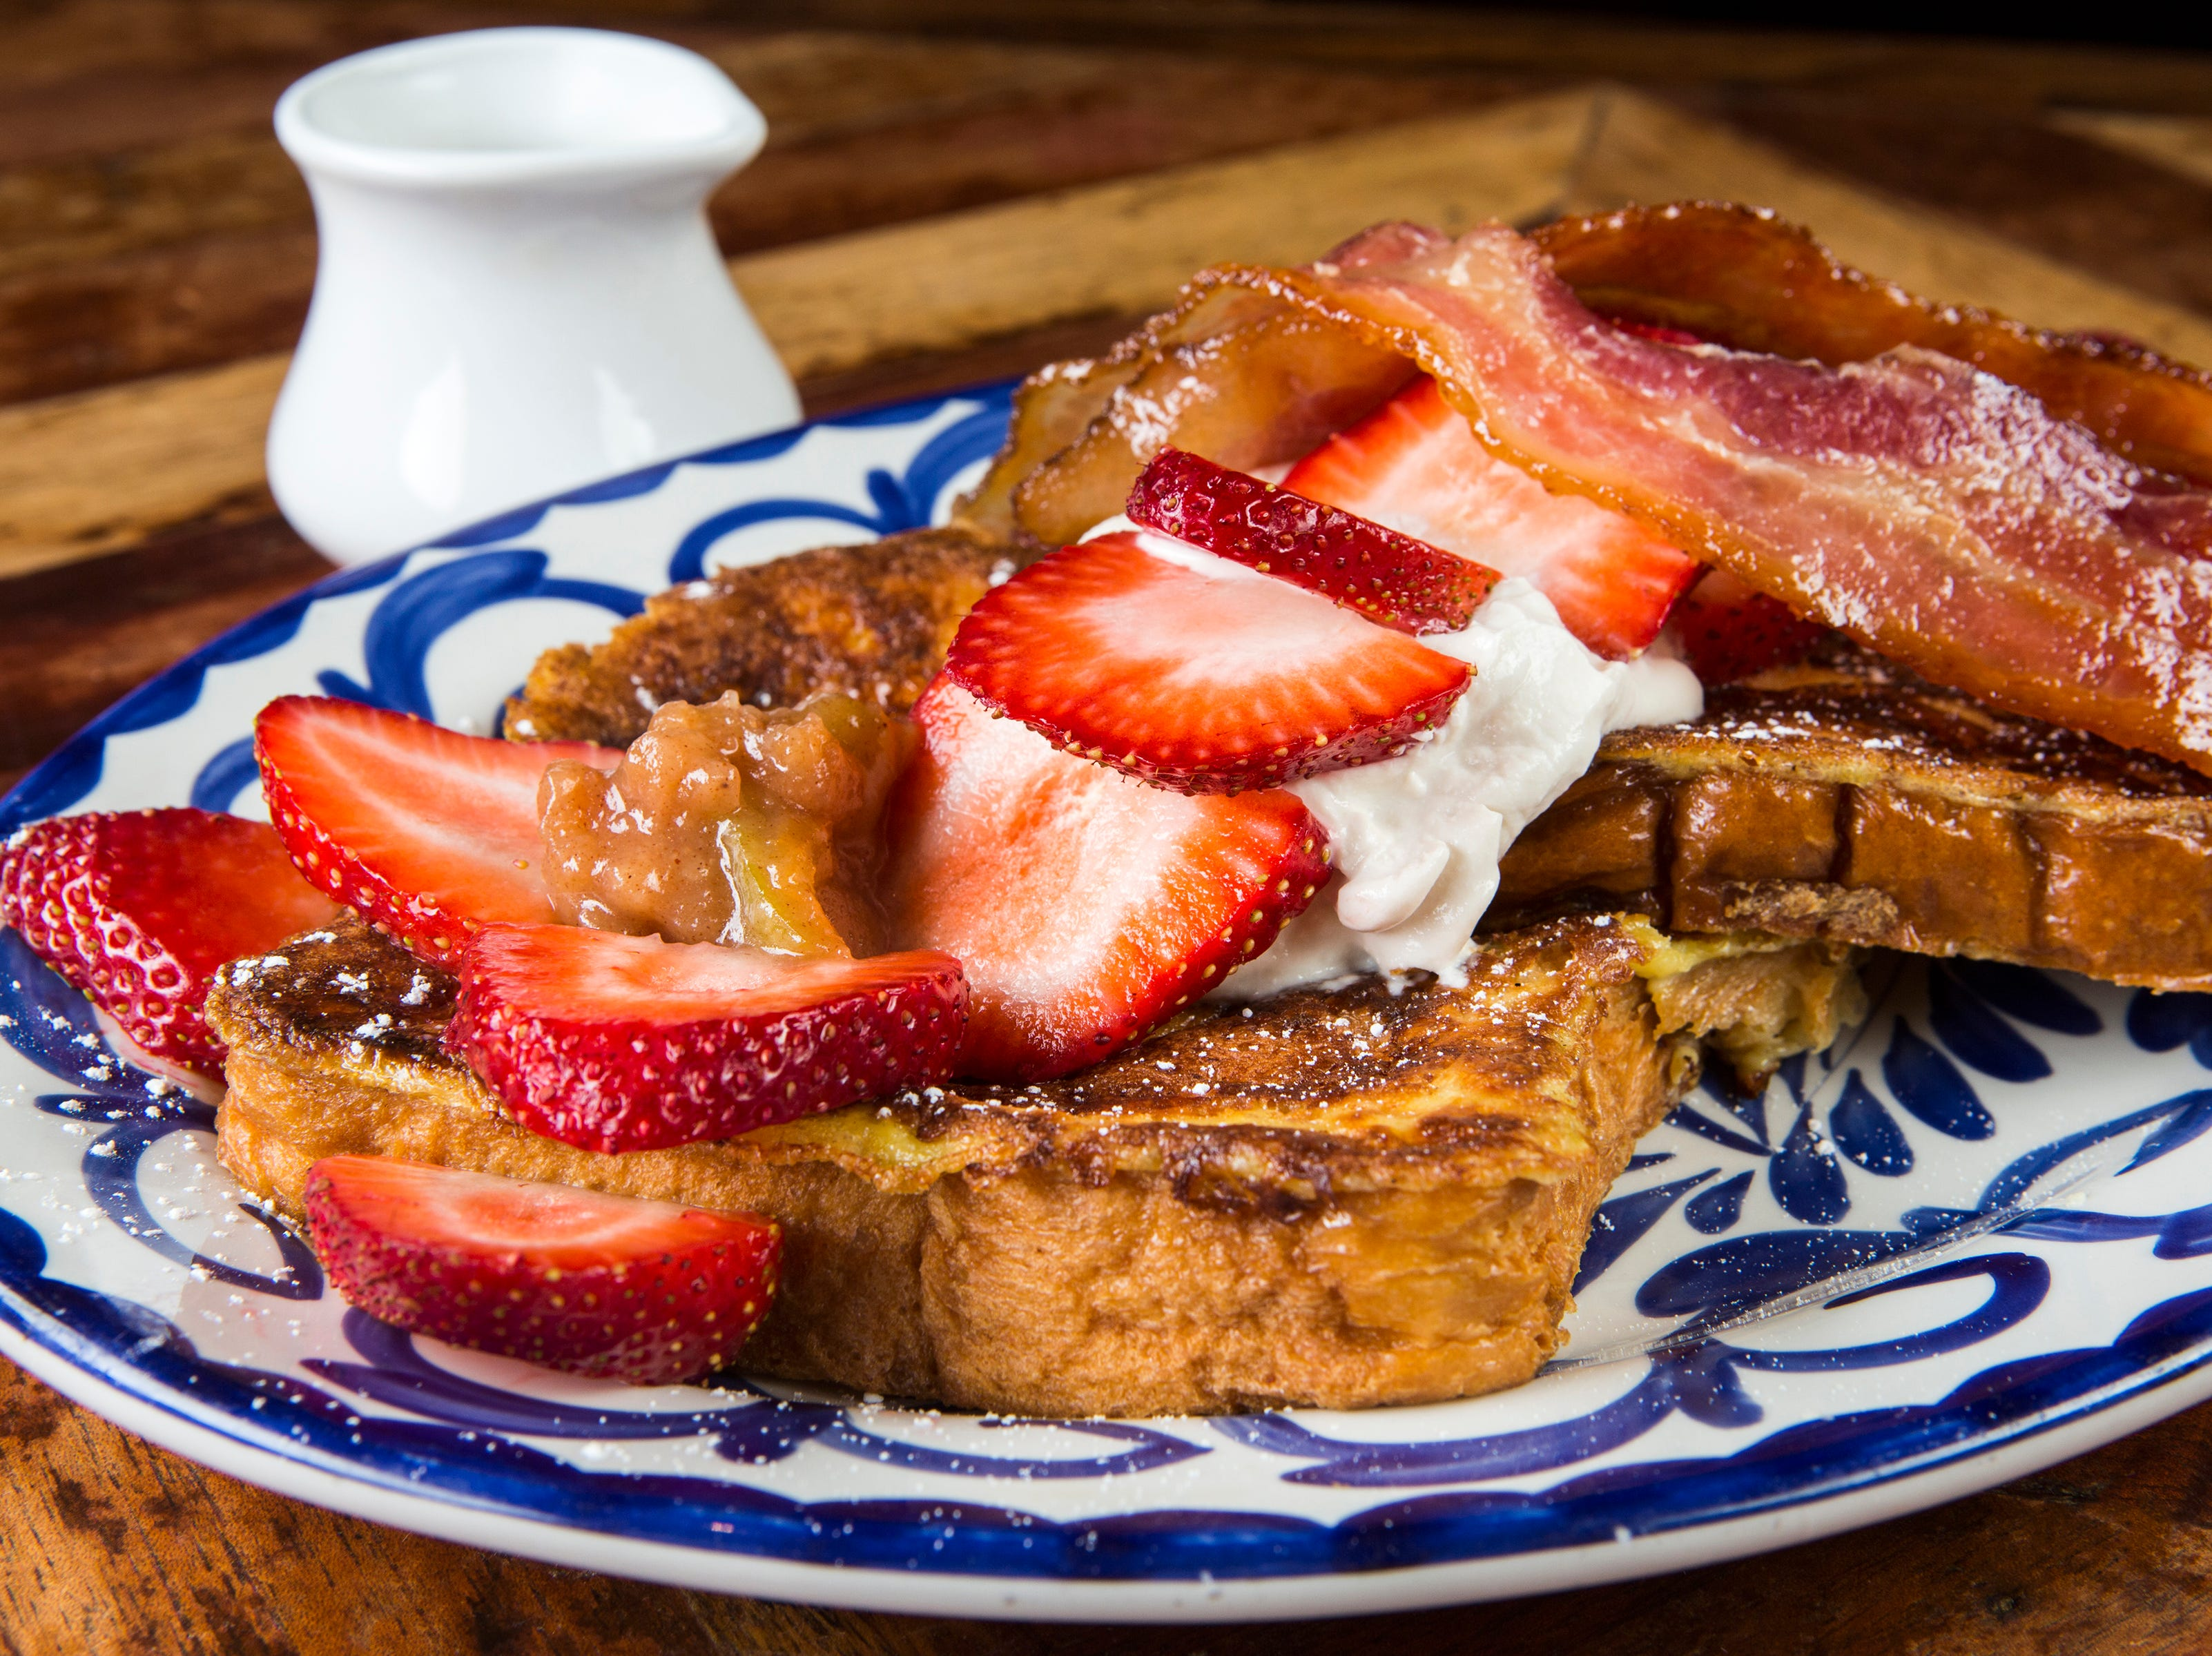 Pan Dulce y Compota Manzana at Rocco's Tacos & Tequila Bar is a brunch entree of Mexican-style French toast with bacon, agave, maple syrup, apple compote and sweet sour cream.